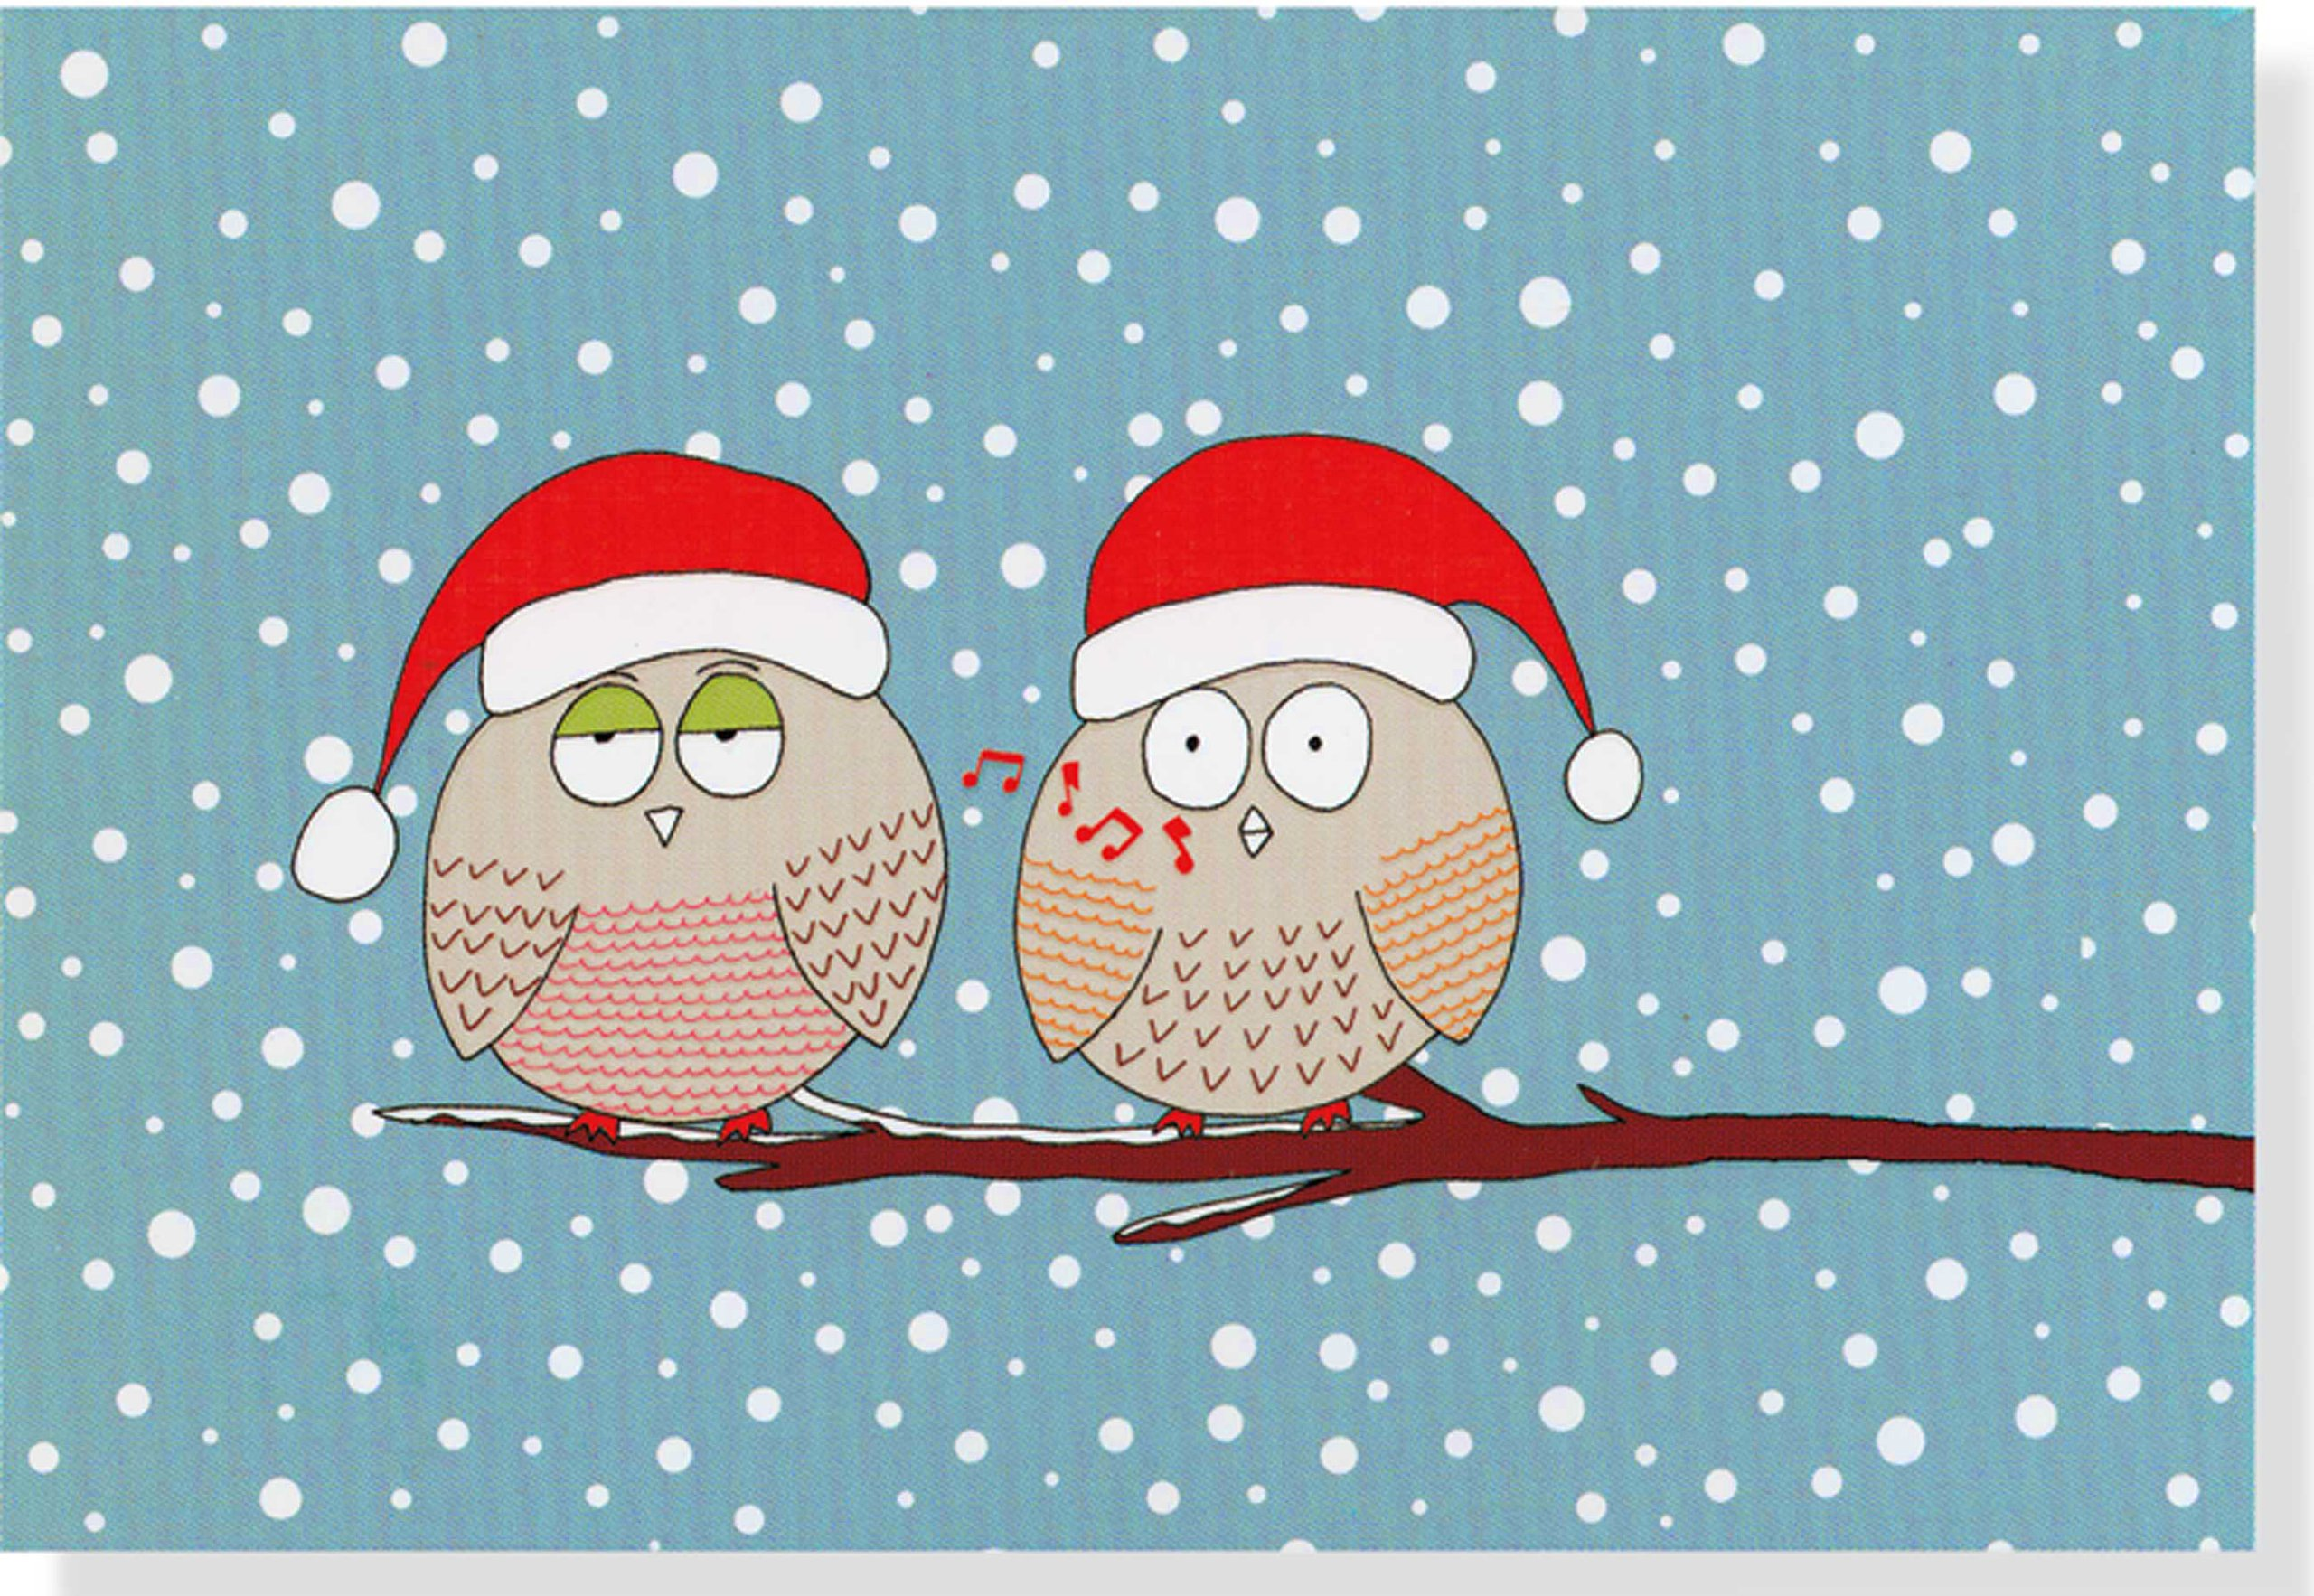 whistling owls small boxed holiday cards christmas cards holiday cards greeting cards peter pauper press inc 9781441311832 amazoncom books - Christmas Images For Cards